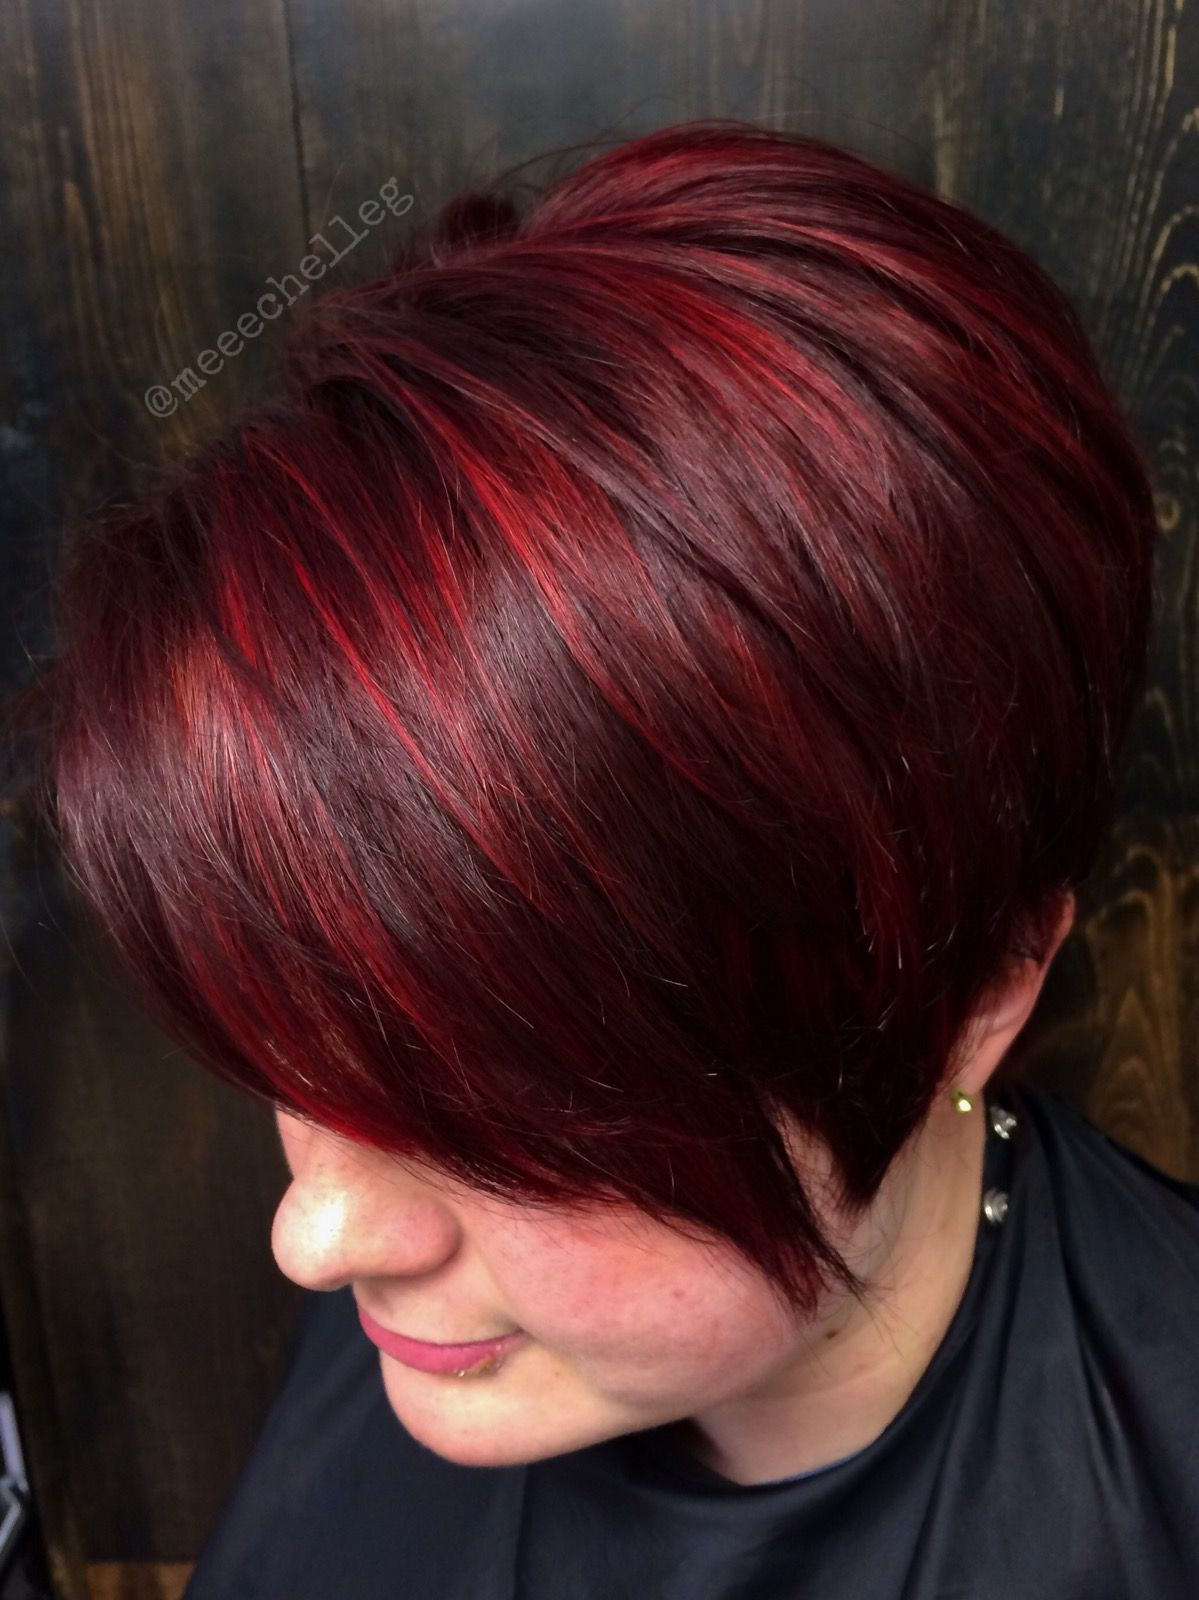 Bright Red Red Highlights Stand Out Red Candy Apple Red Short Hair Pixie Bold Red Vivid Growing Ou Short Red Hair Short Hair Highlights Hair Highlights